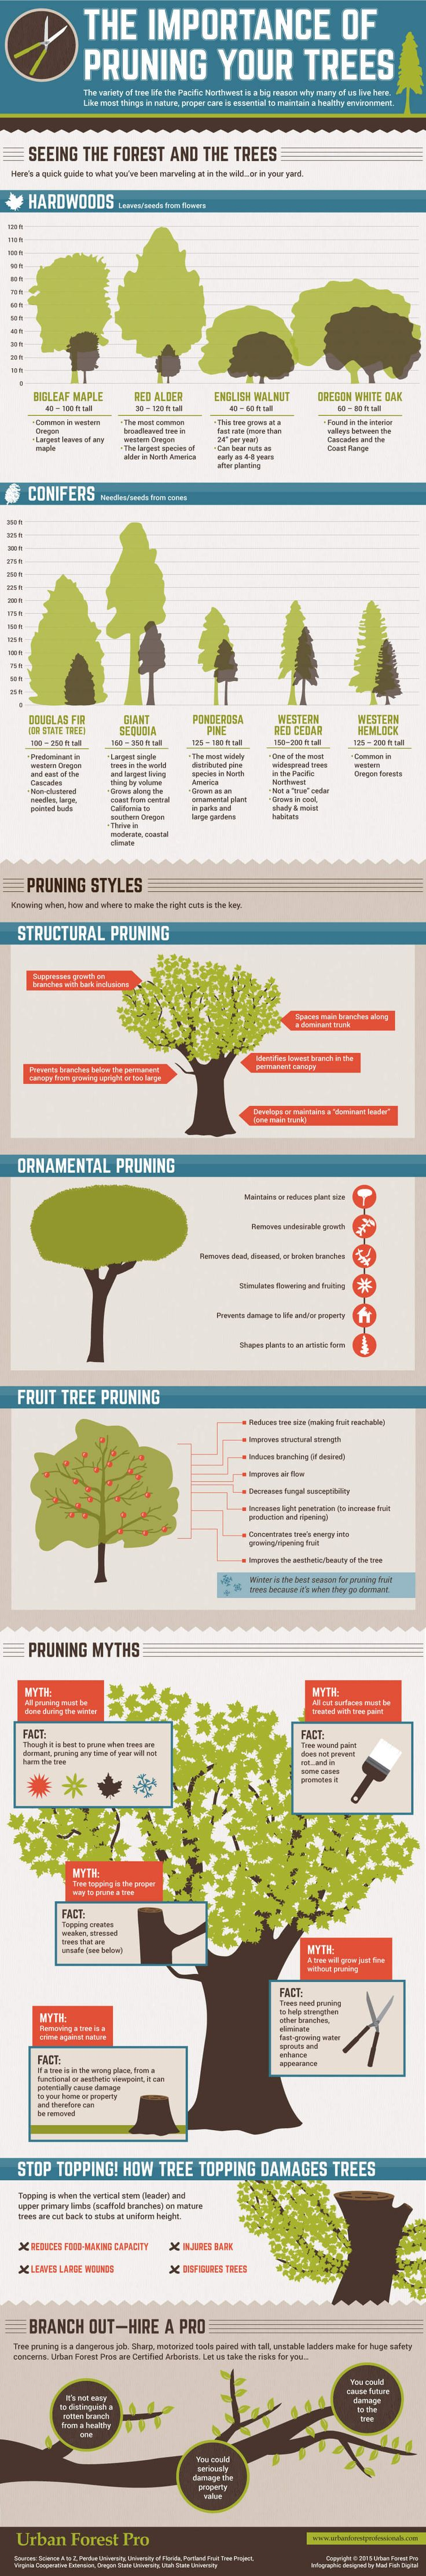 883 best images about garden paths on pinterest shade garden - The Importance Of Pruning Your Trees